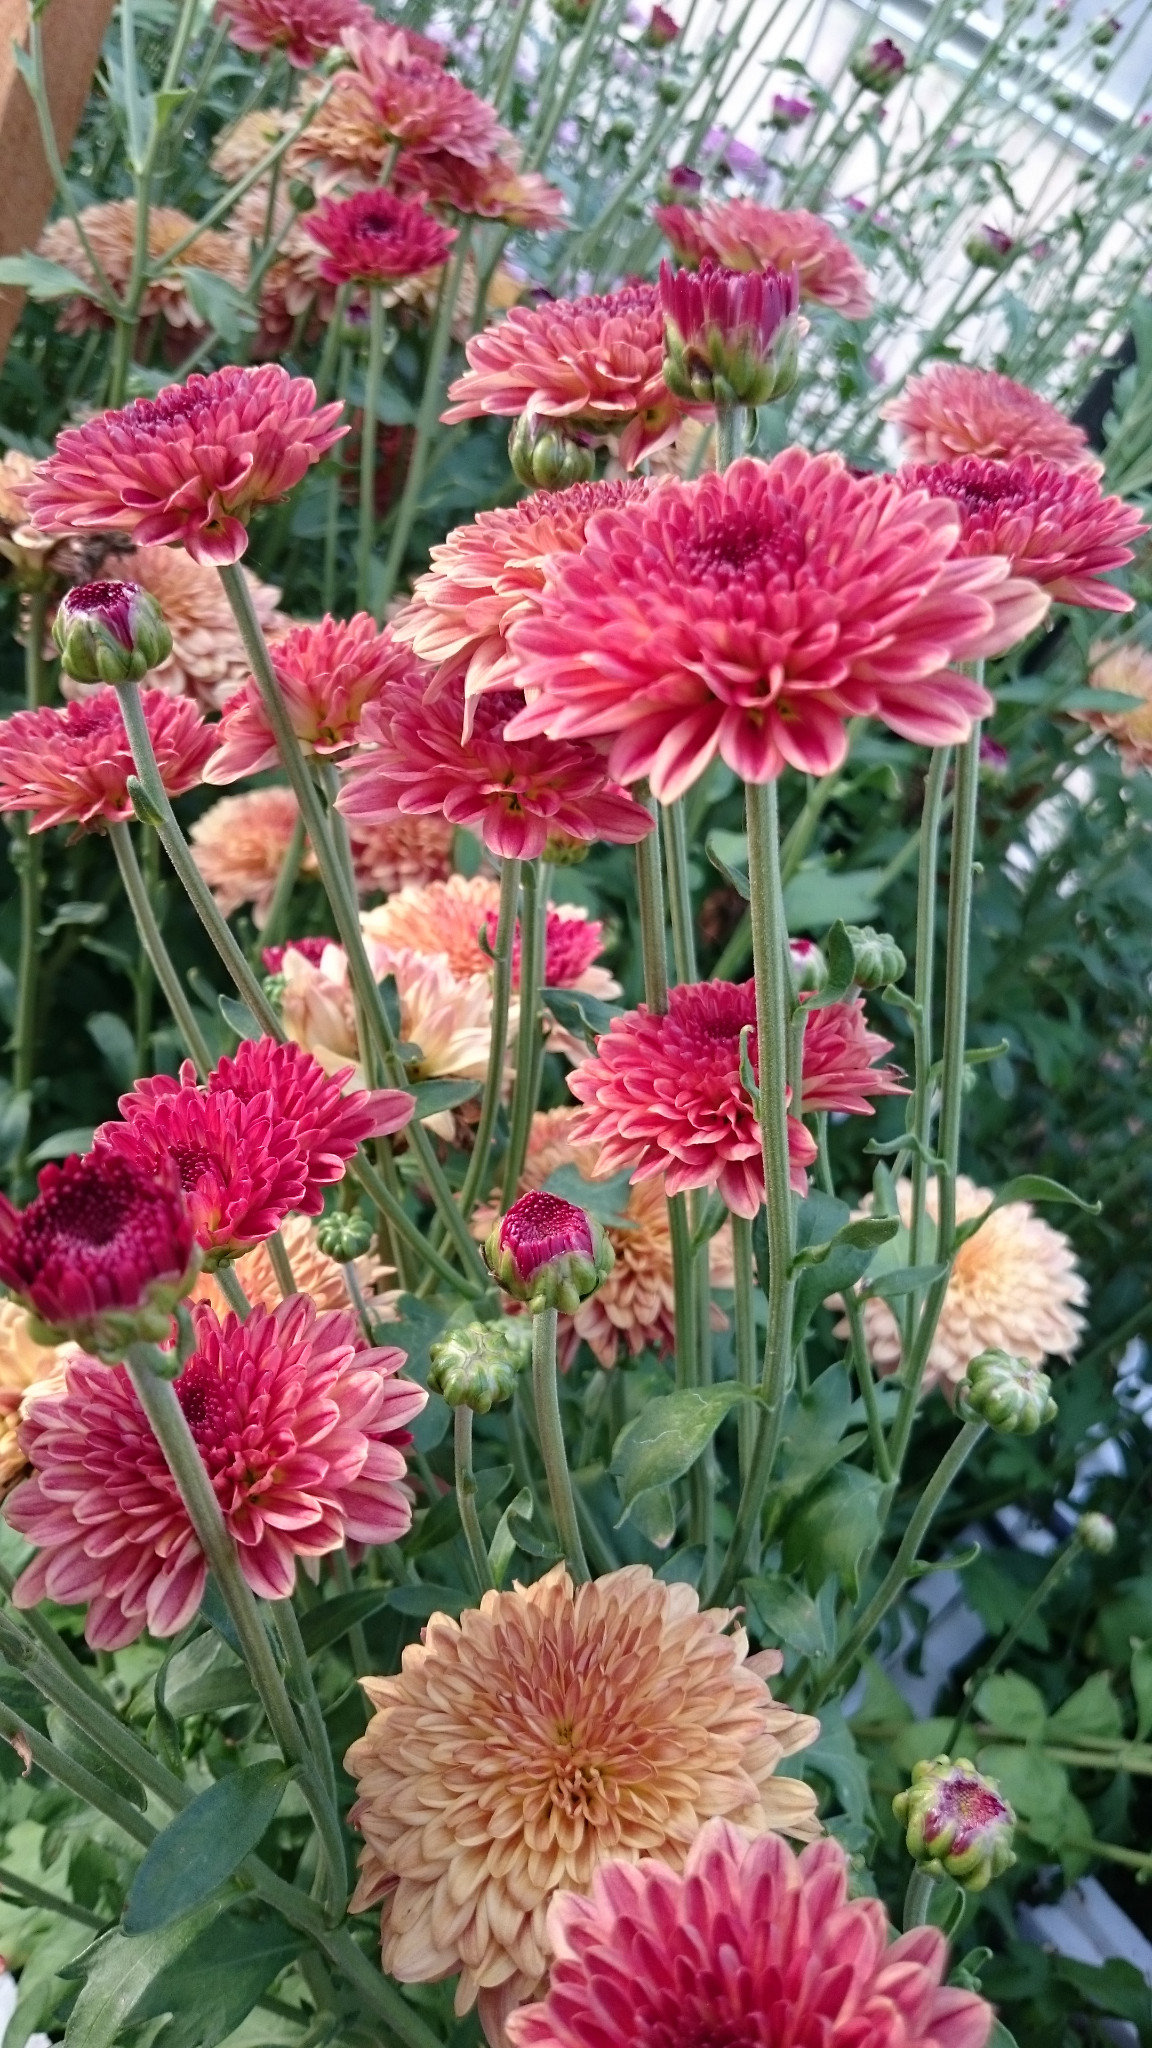 Terracotta/Caramel Chrysanthemum